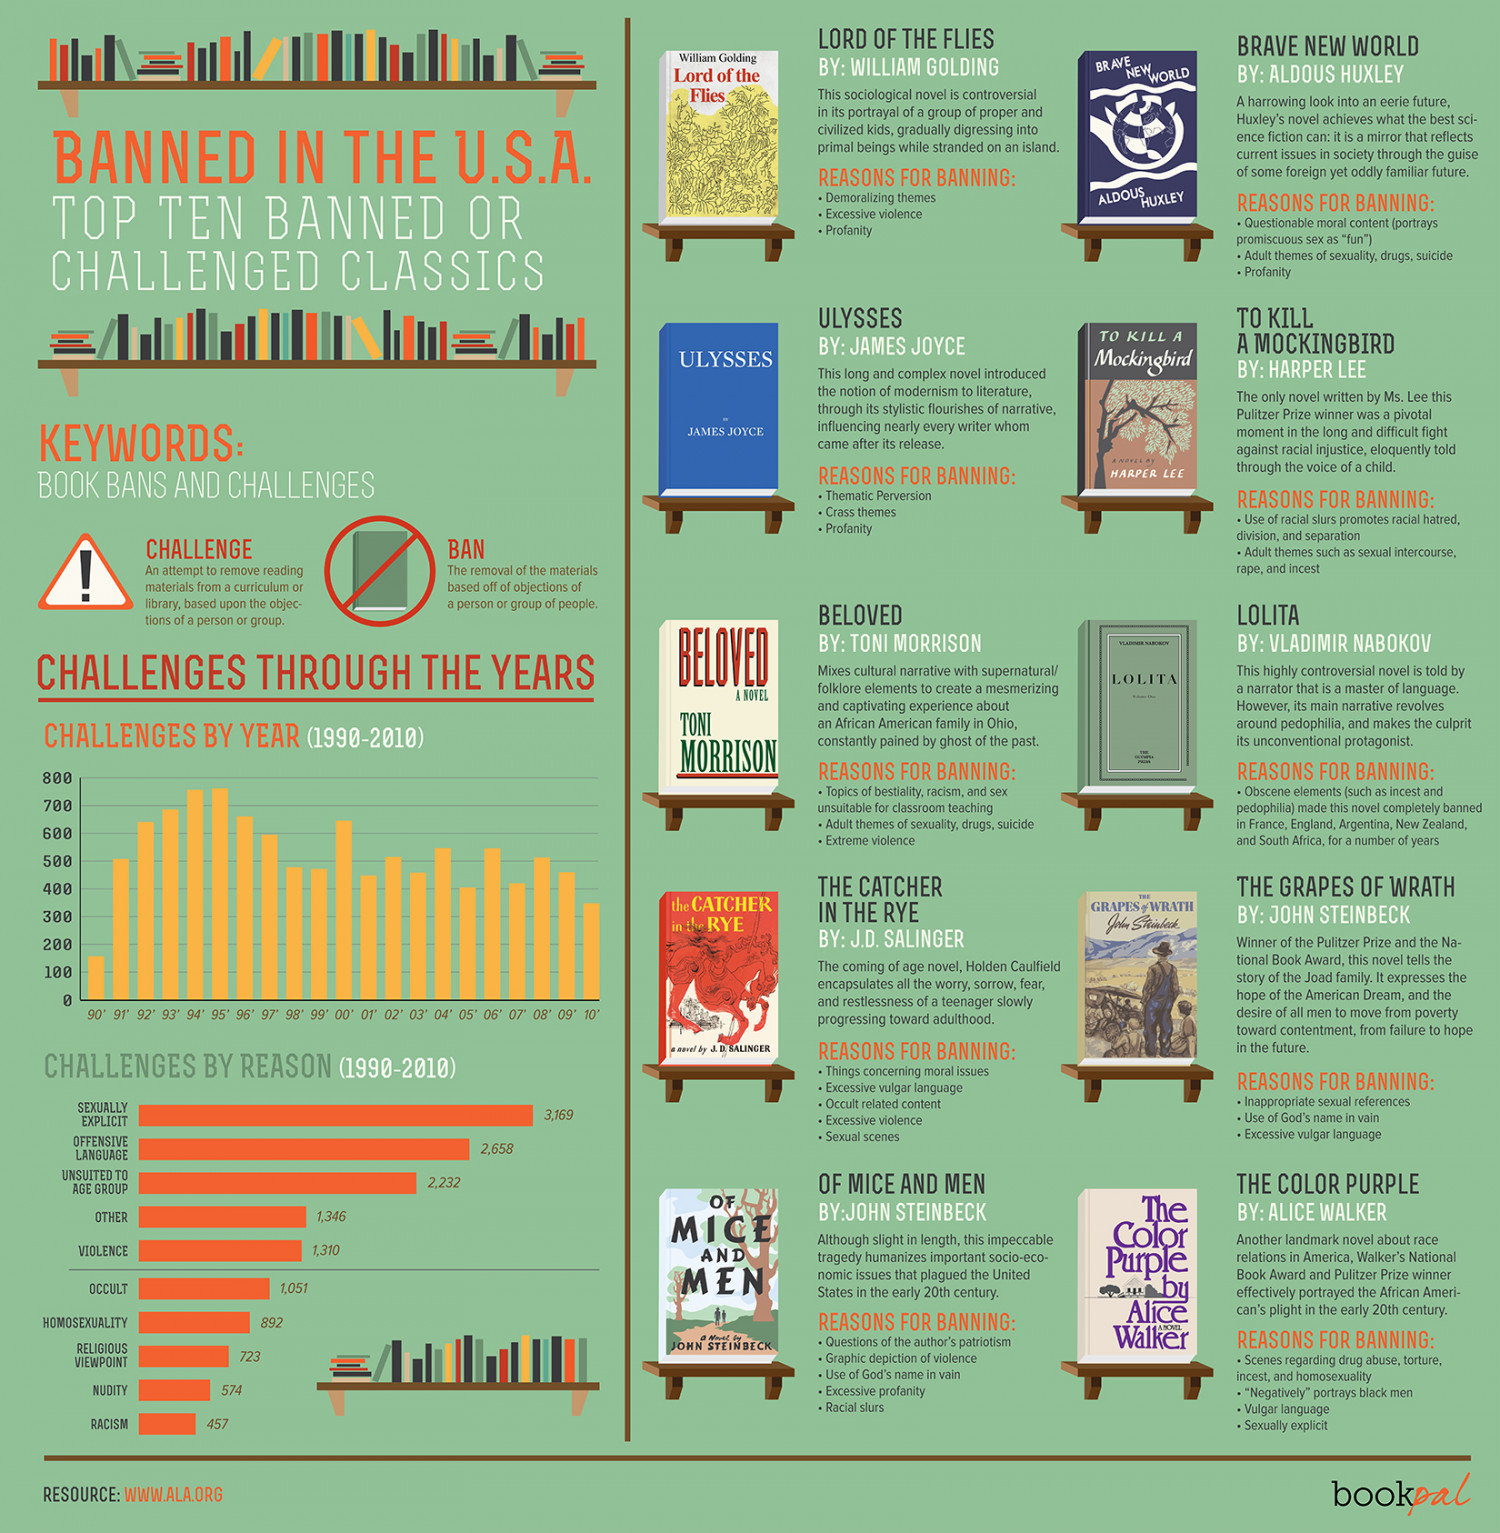 Banned In the USA: Top Ten Banned or Challenged Classics Infographic